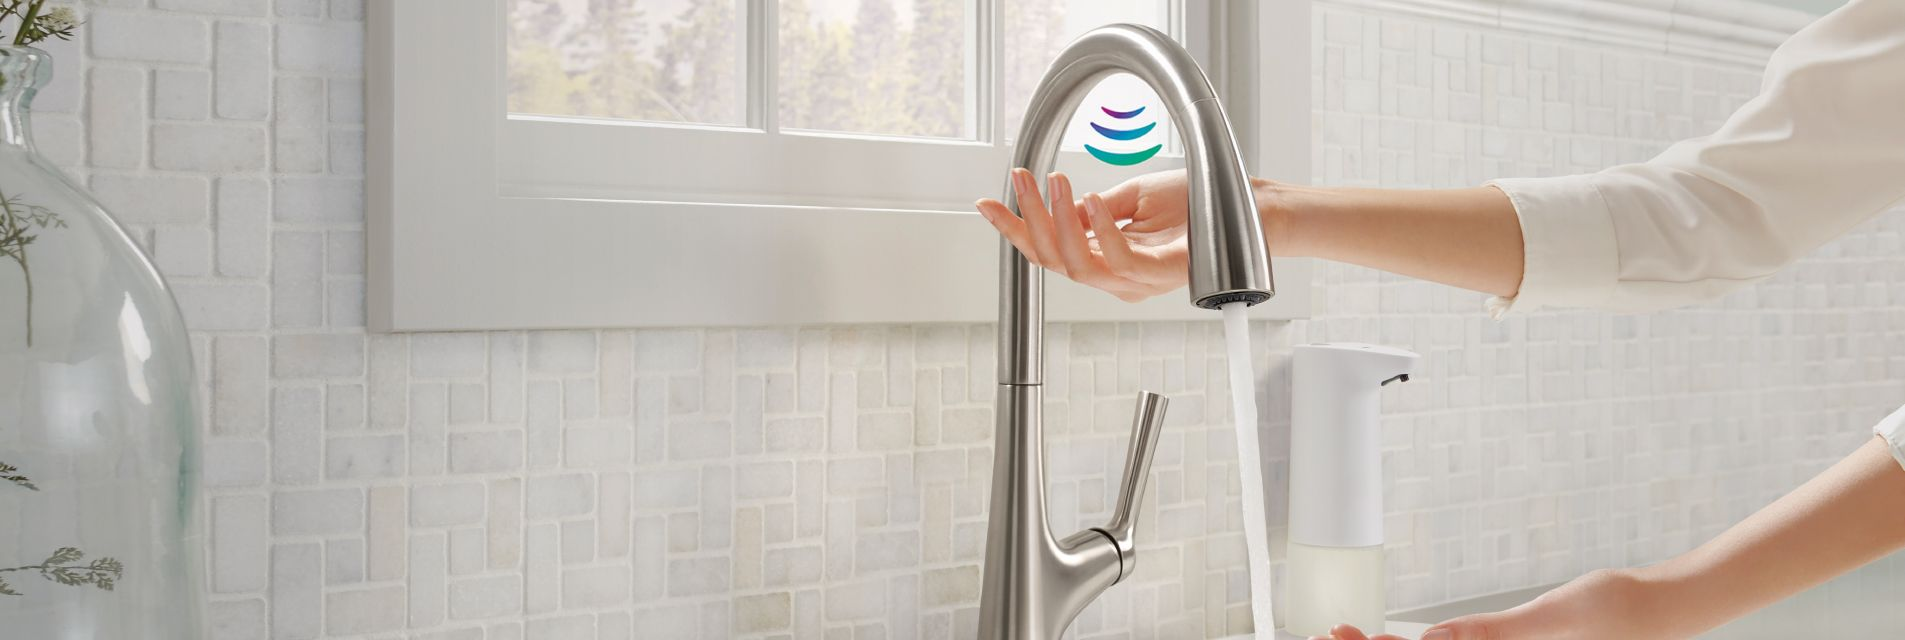 Hands-Free and Convenient: The Malleco™ Touchless Faucet